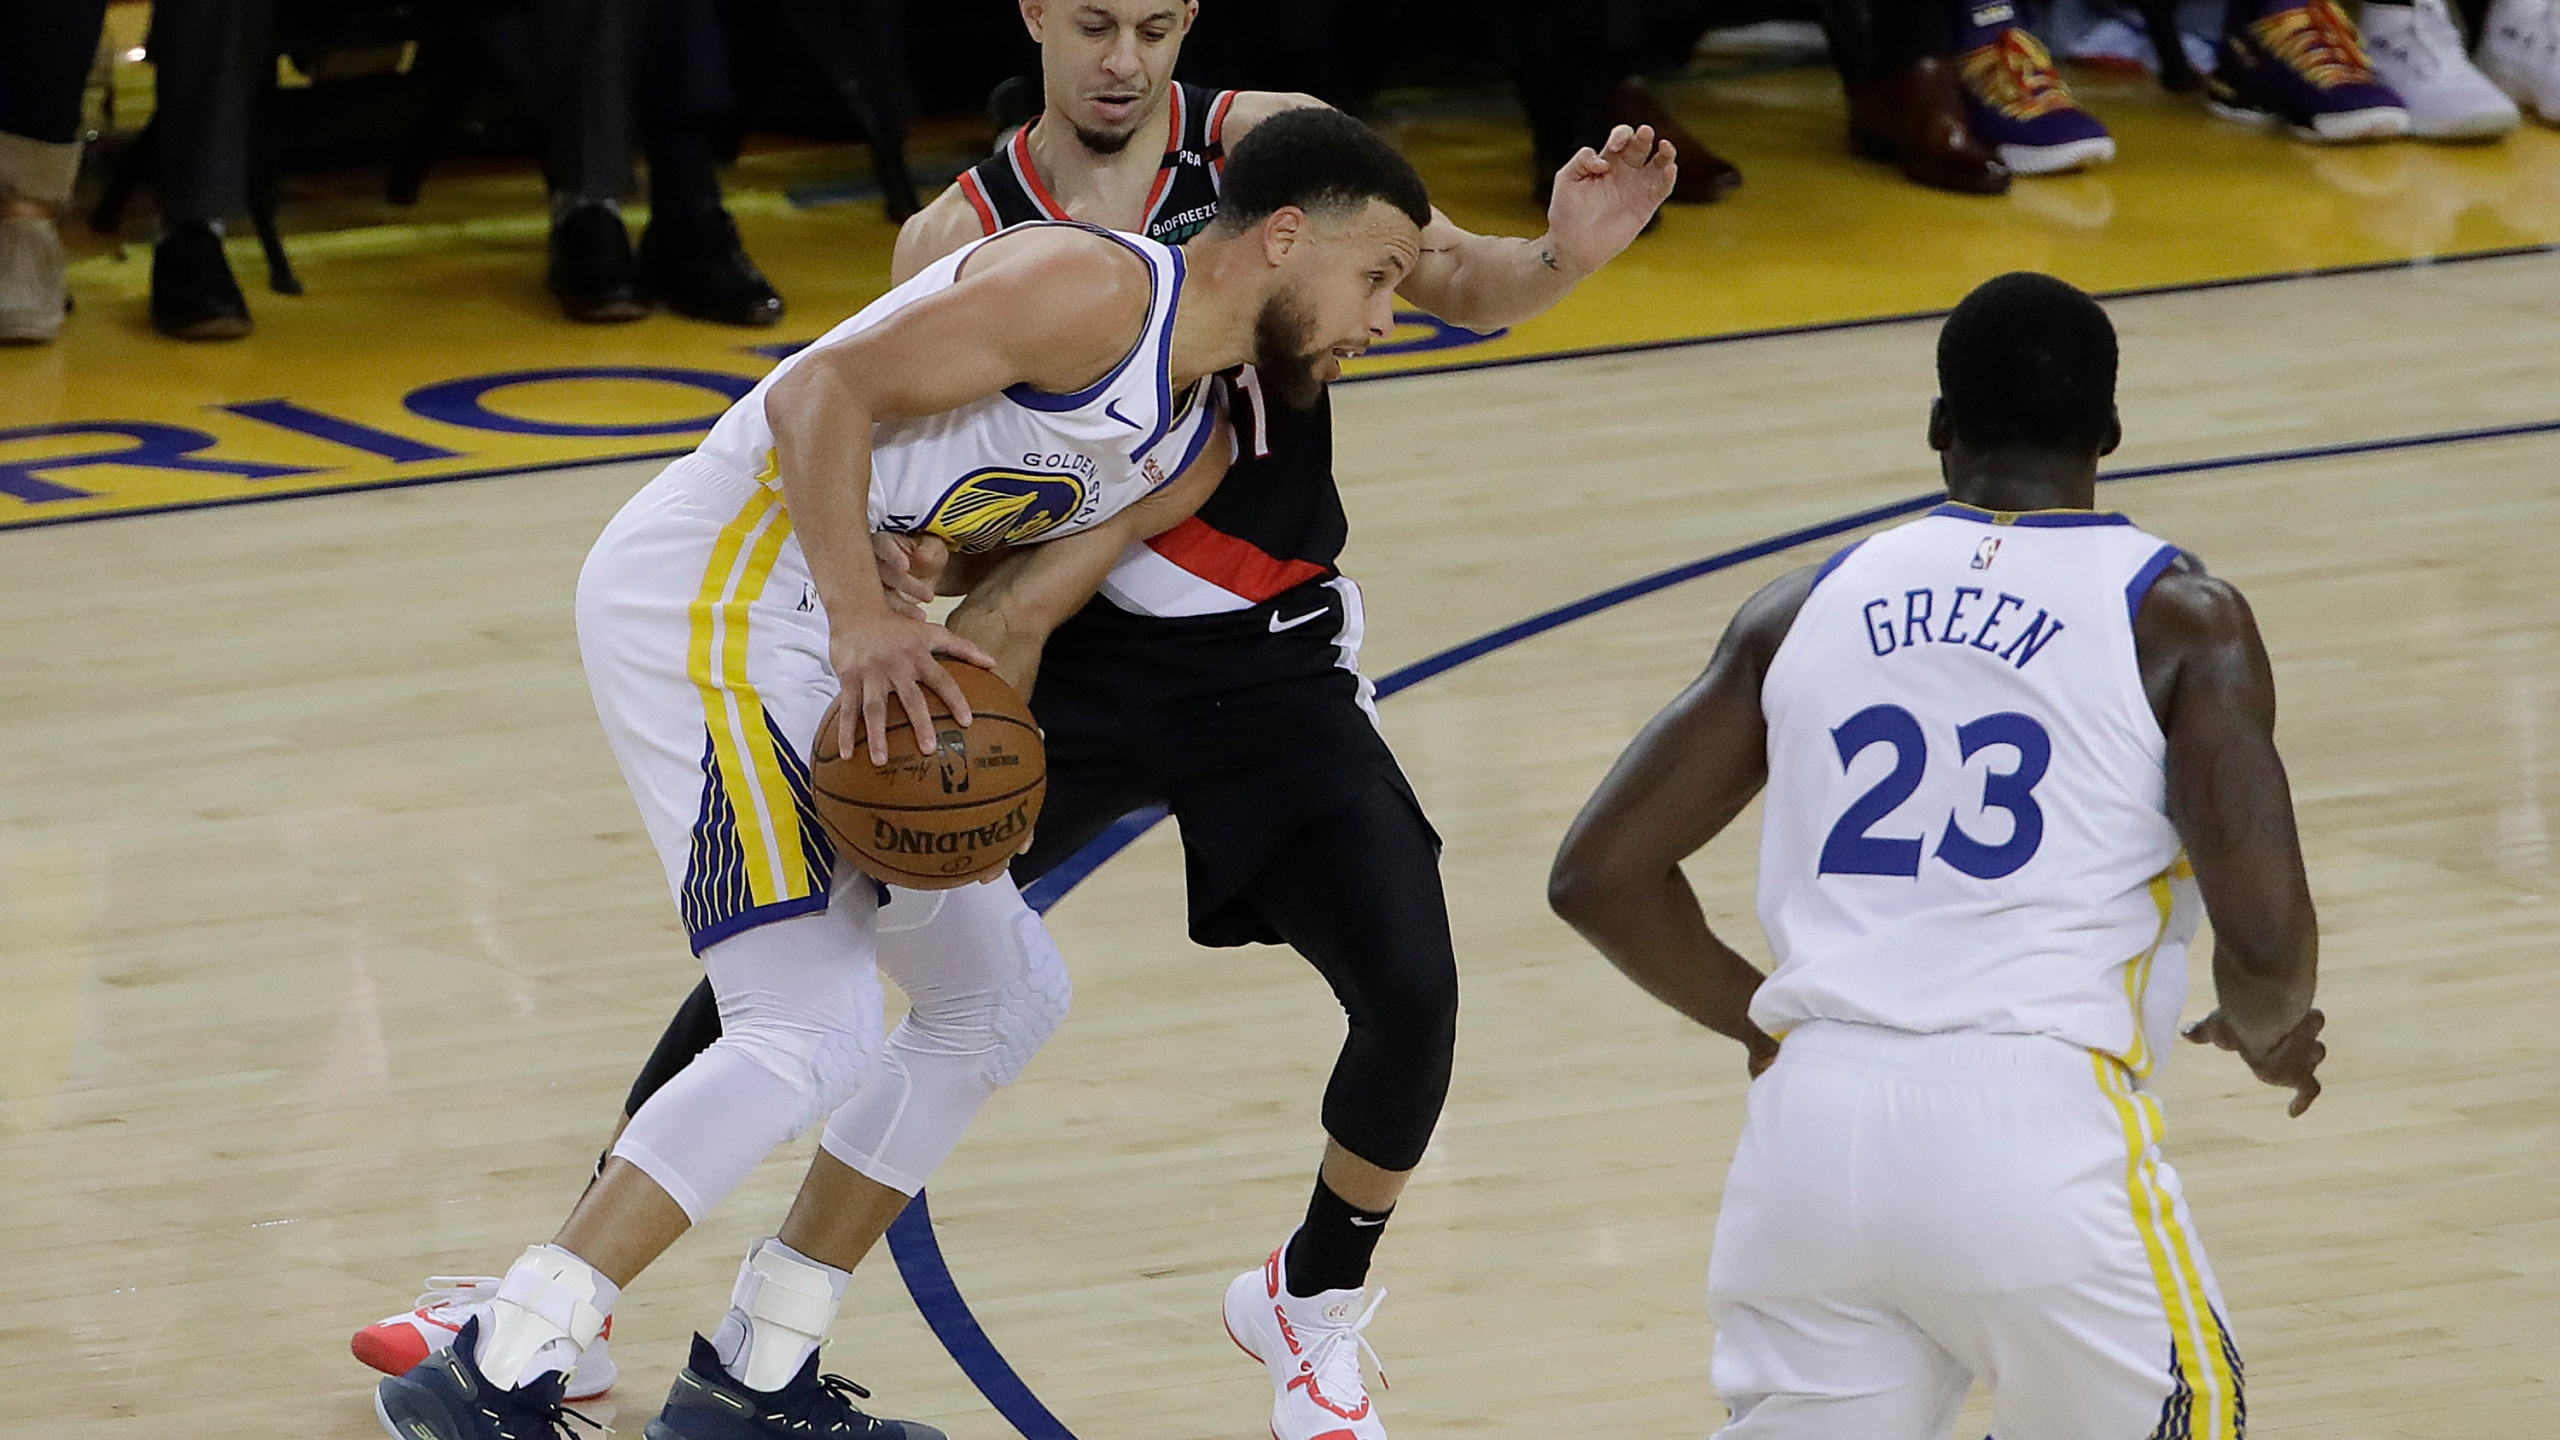 Trail_Blazers_Warriors_Basketball_50868-159532.jpg63826824